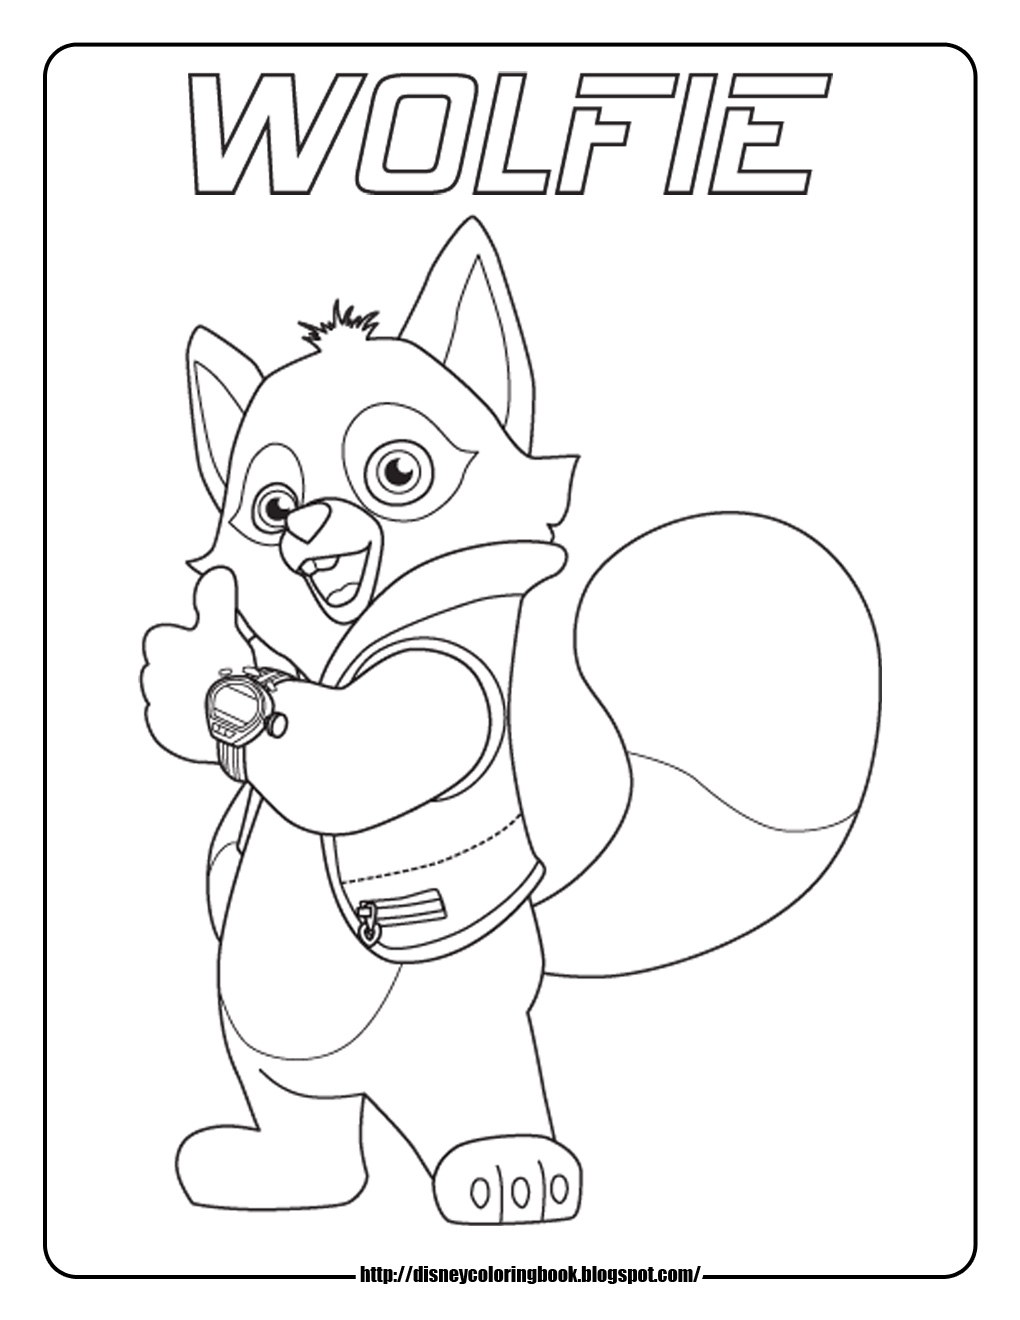 Disney Coloring Pages and Sheets for Kids: Special Agent Oso 1: Free ...